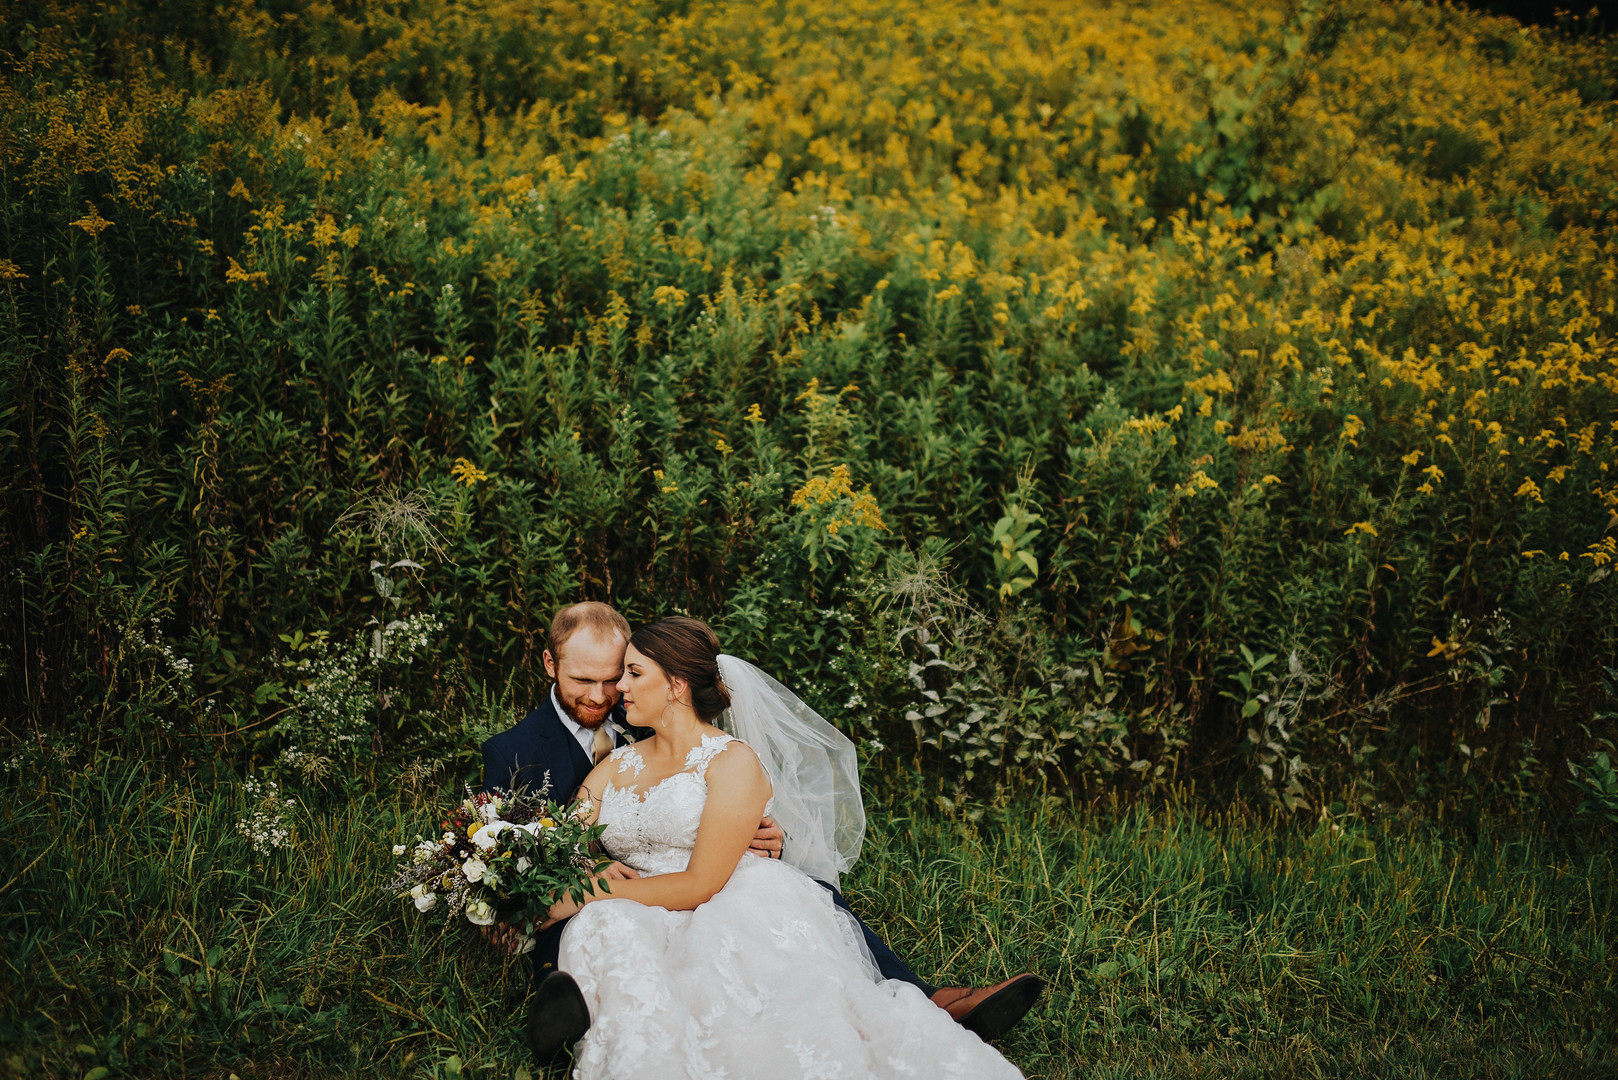 Blair Wisconsin Outdoor Unposed Lifestyle Wedding Photographer Monarch Valley